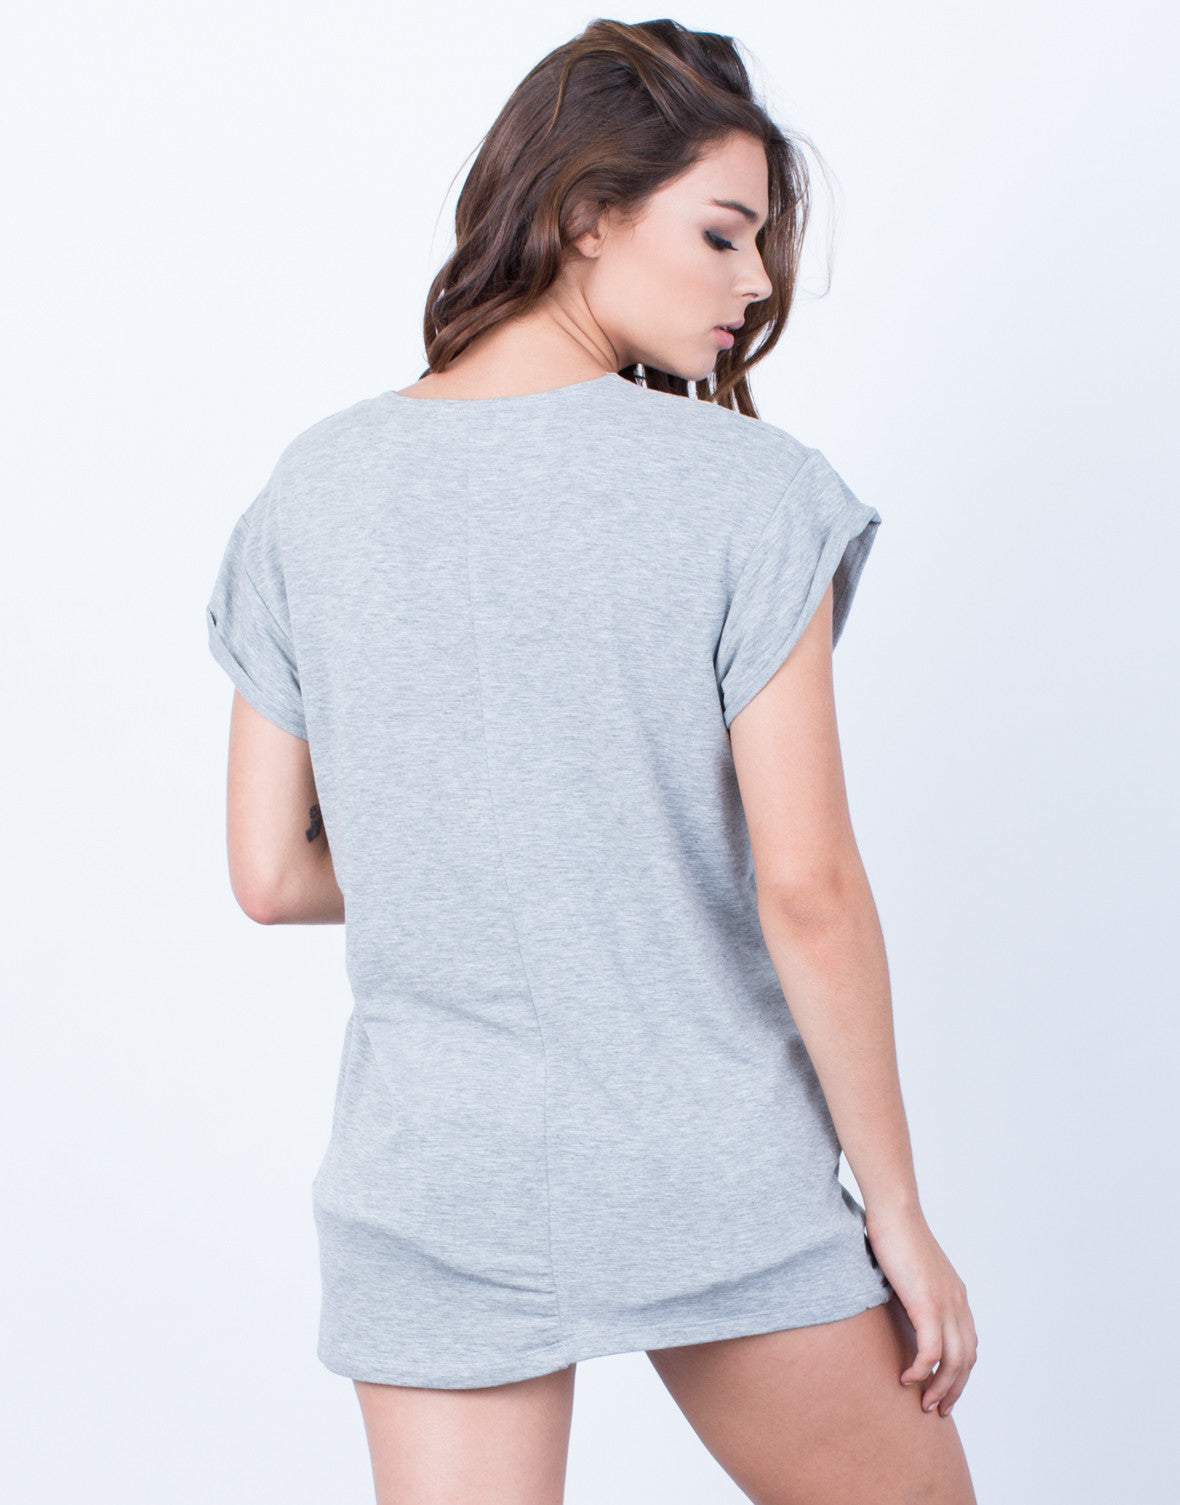 Back View of Cuffed Sleeves Top